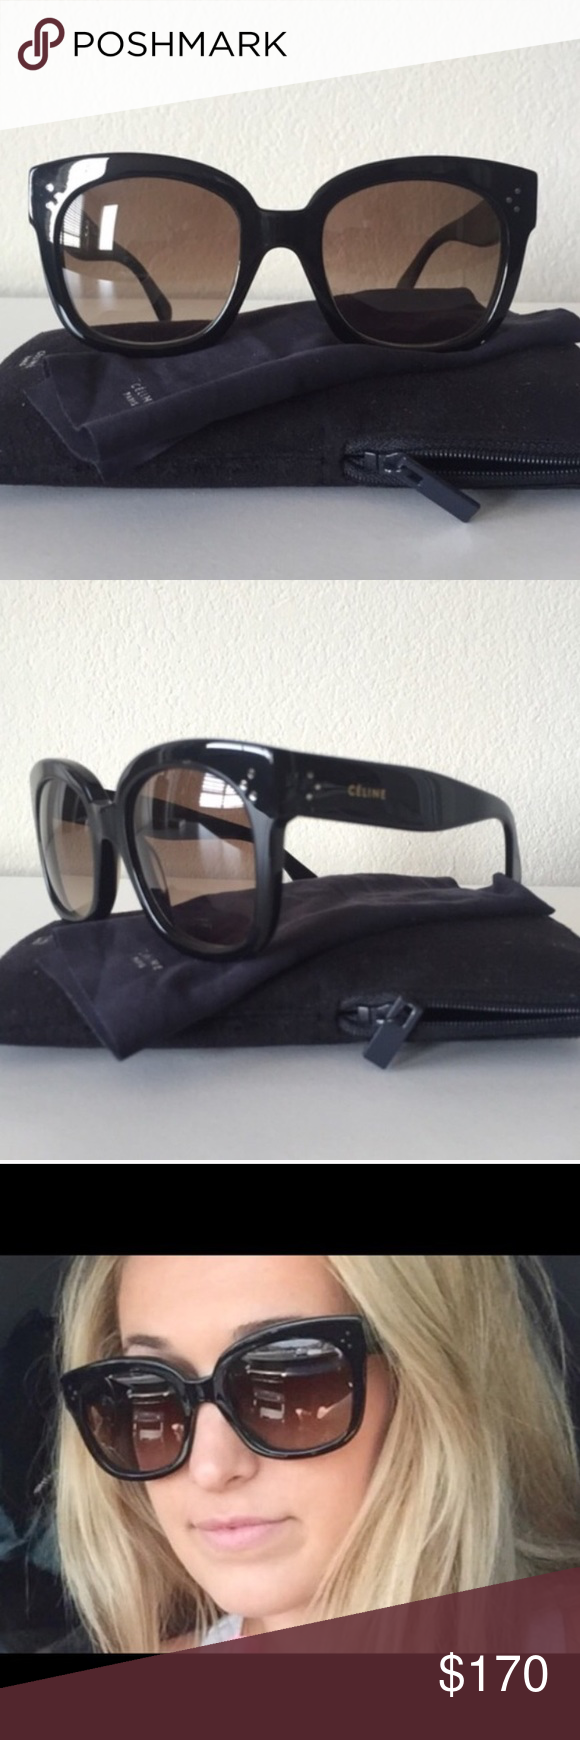 edbc0006571 Céline New Audrey CL 41805 S 807HA Céline New Audrey CL 41805 S 807HA  sunglasses. Black frame with brown gradient lenses. Have only been worn  once